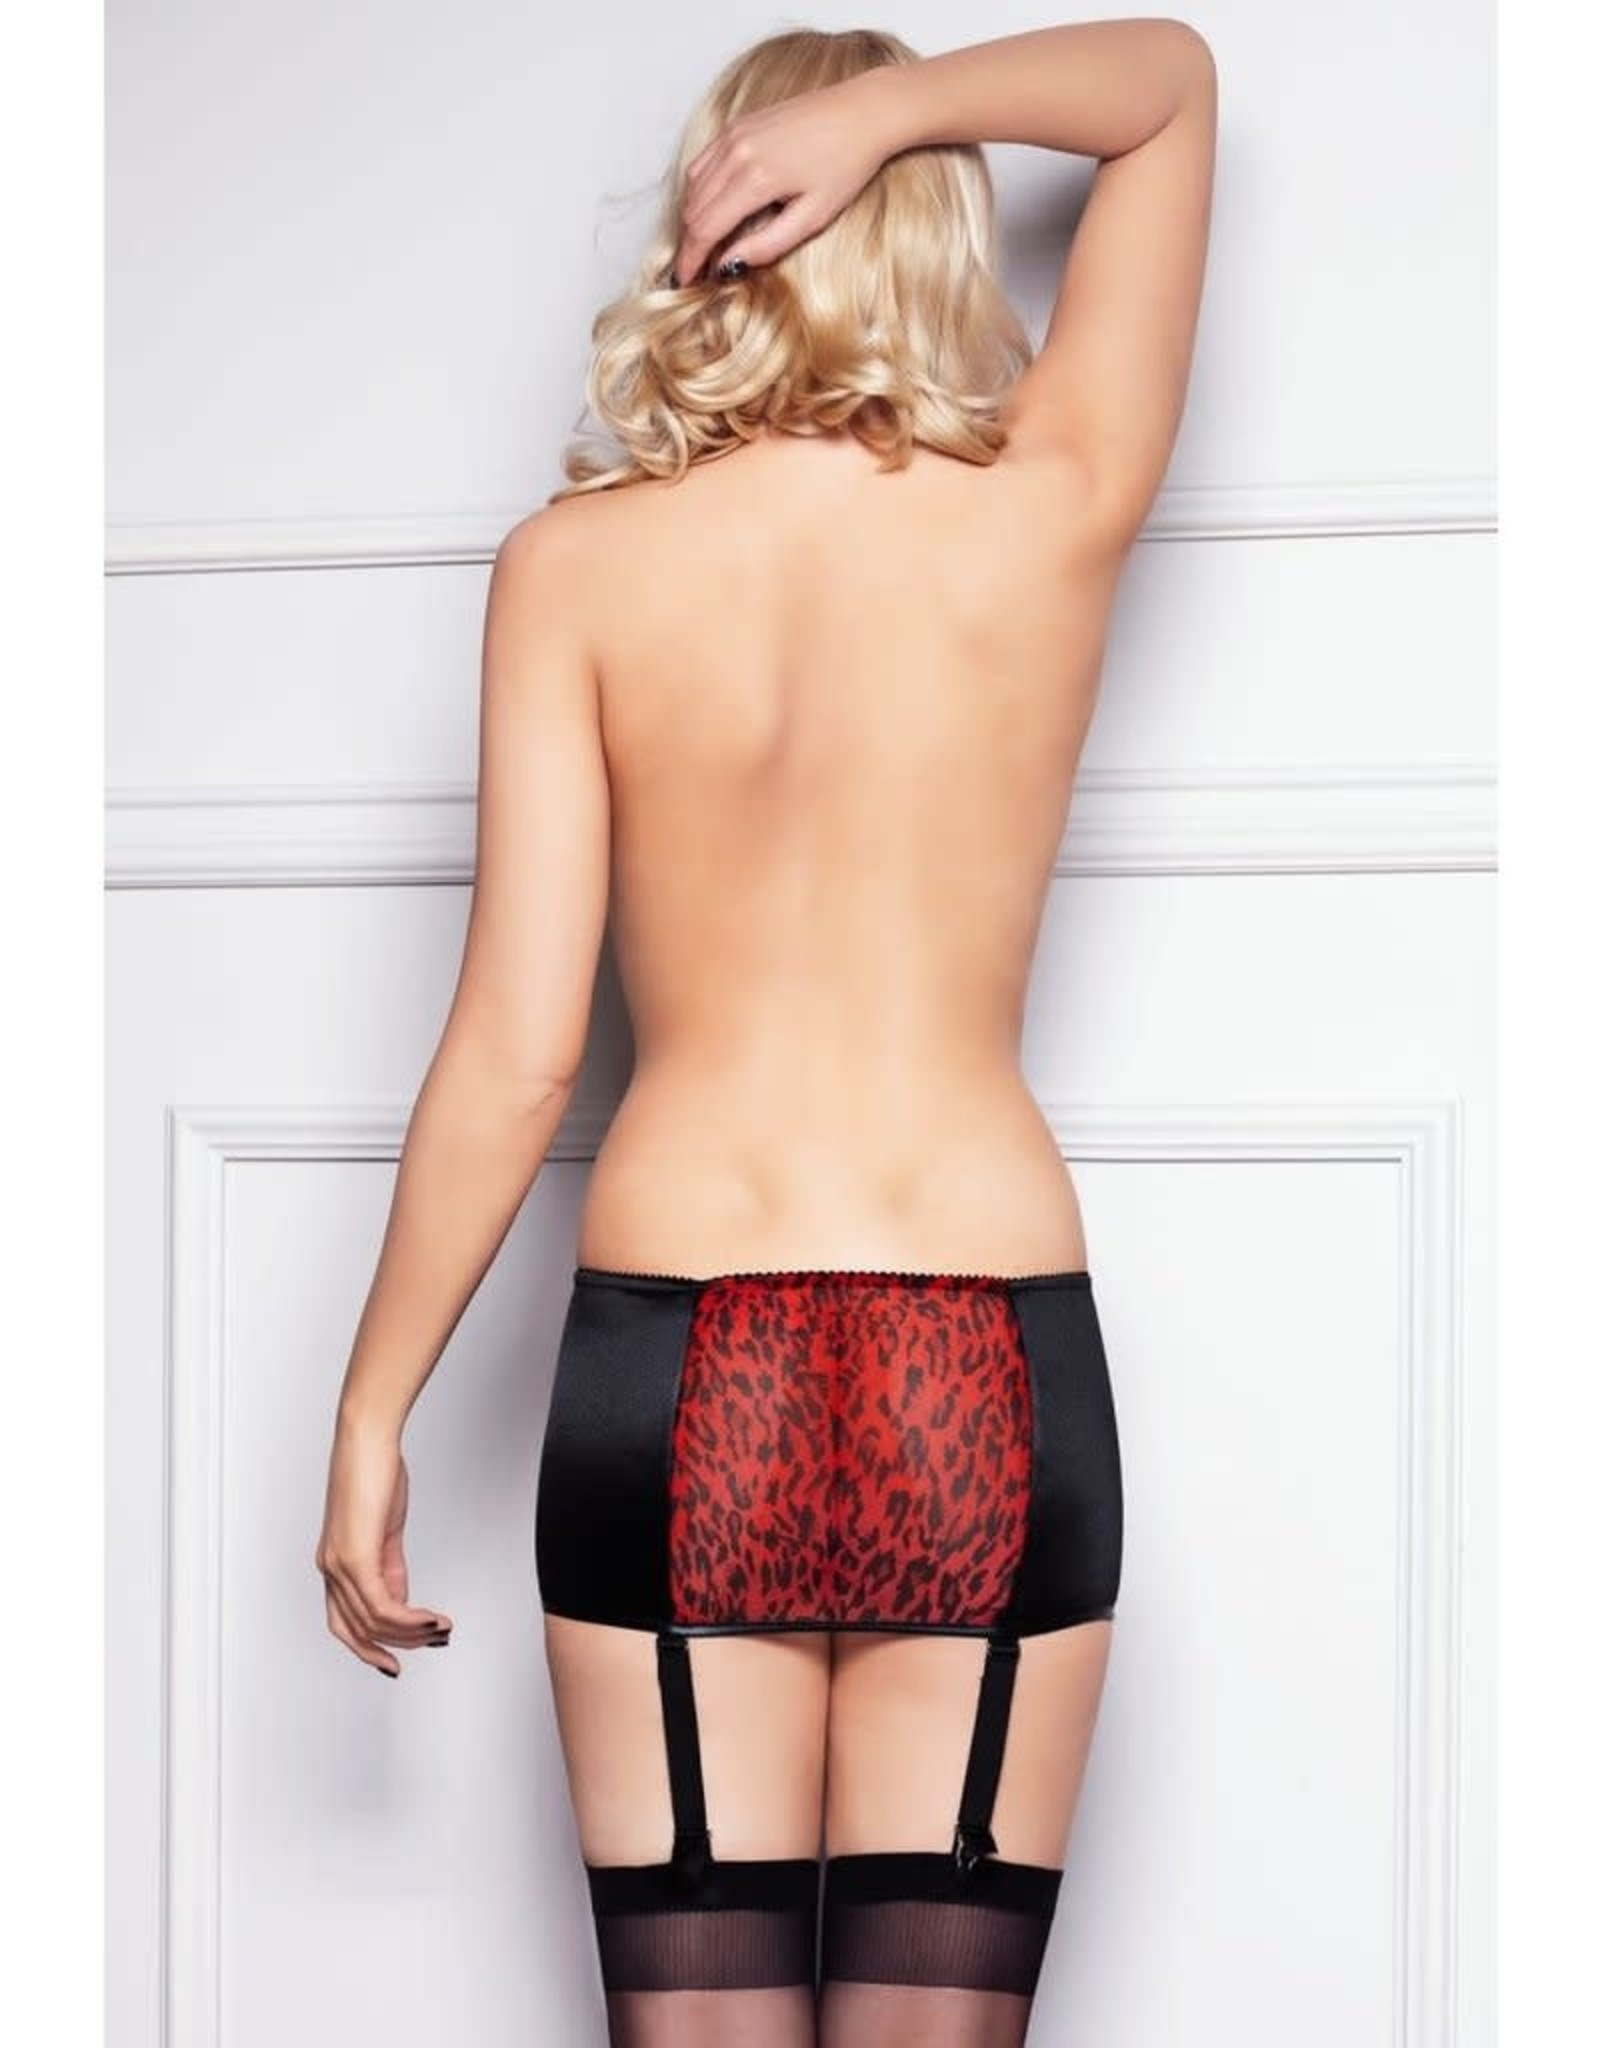 7 HEAVEN 7 HEAVEN - BLACK SATIN AND TIGER SPOTS MICROFIBRE GARTER STOCKINGS INCLUDED - LARGE